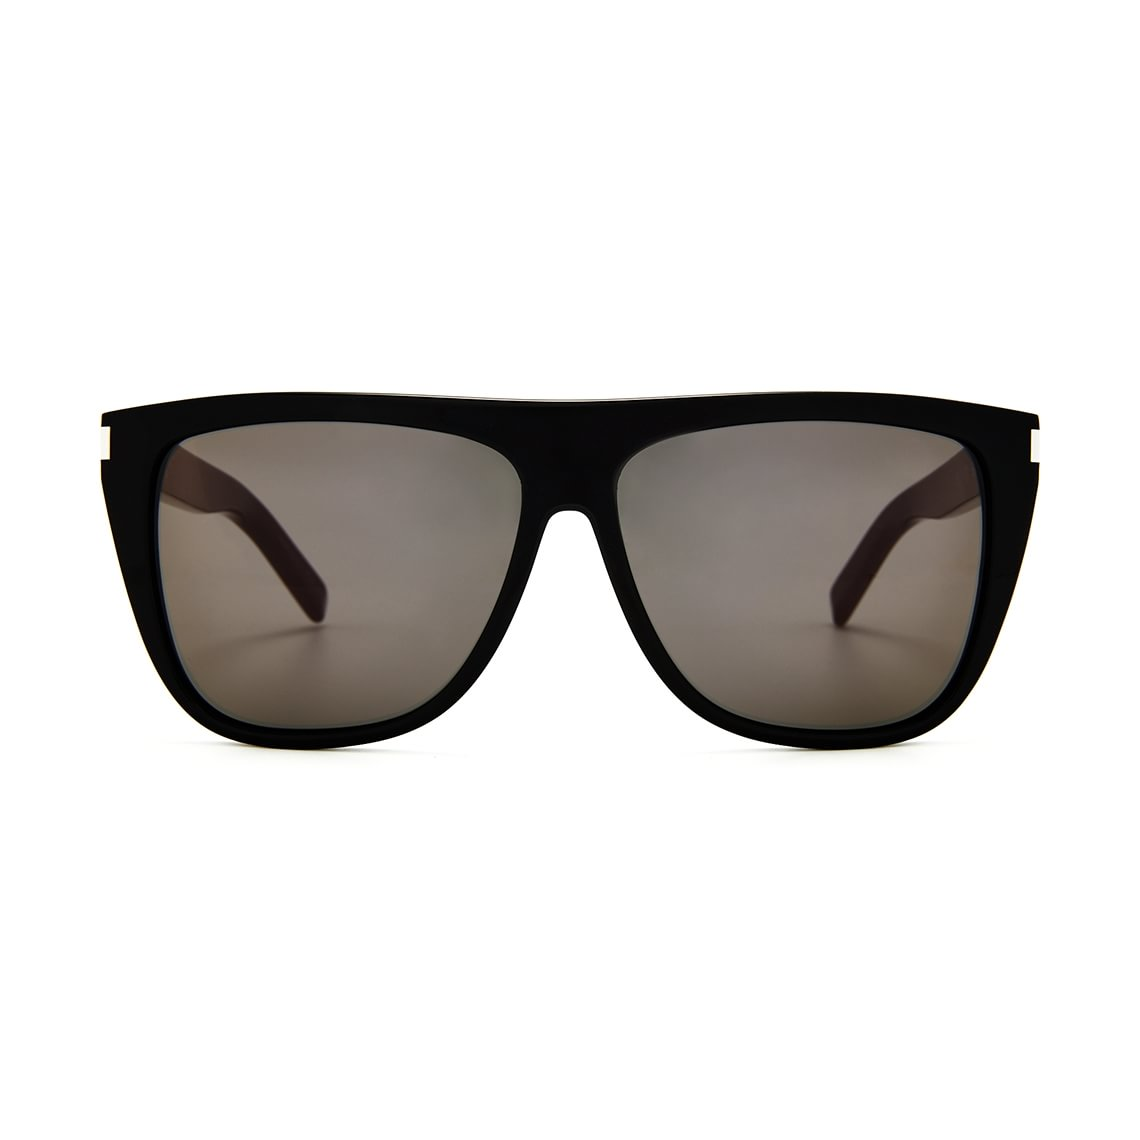 Saint Laurent SL 1 002 5913